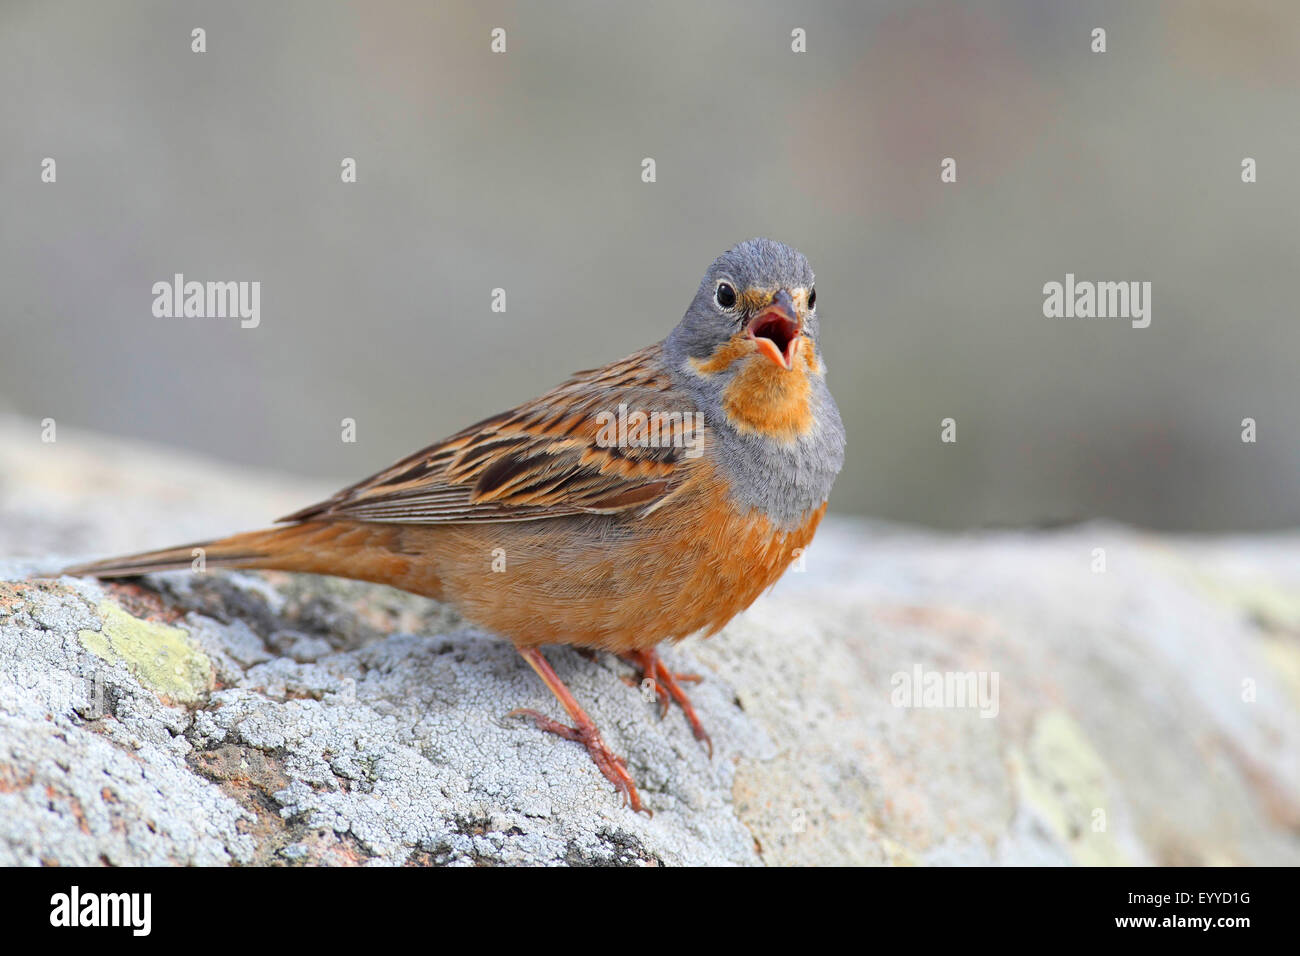 cretzschmar's bunting (Emberiza caesia), male sits on a stone and sings, Greece, Lesbos - Stock Image